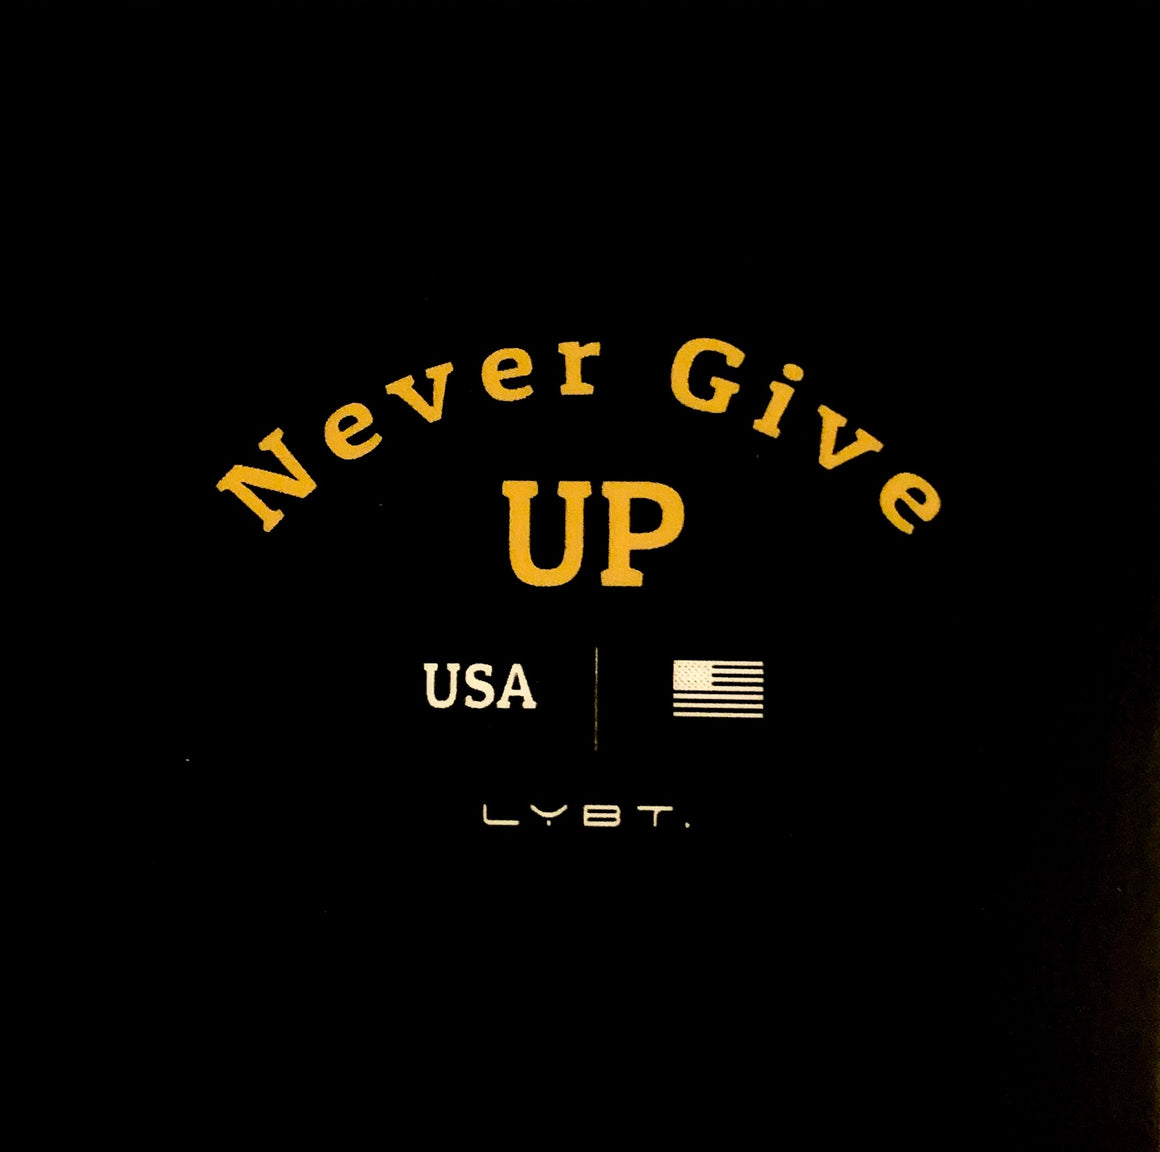 NEVER GIVE UP STICKER - LEGACY BUILT. APPAREL